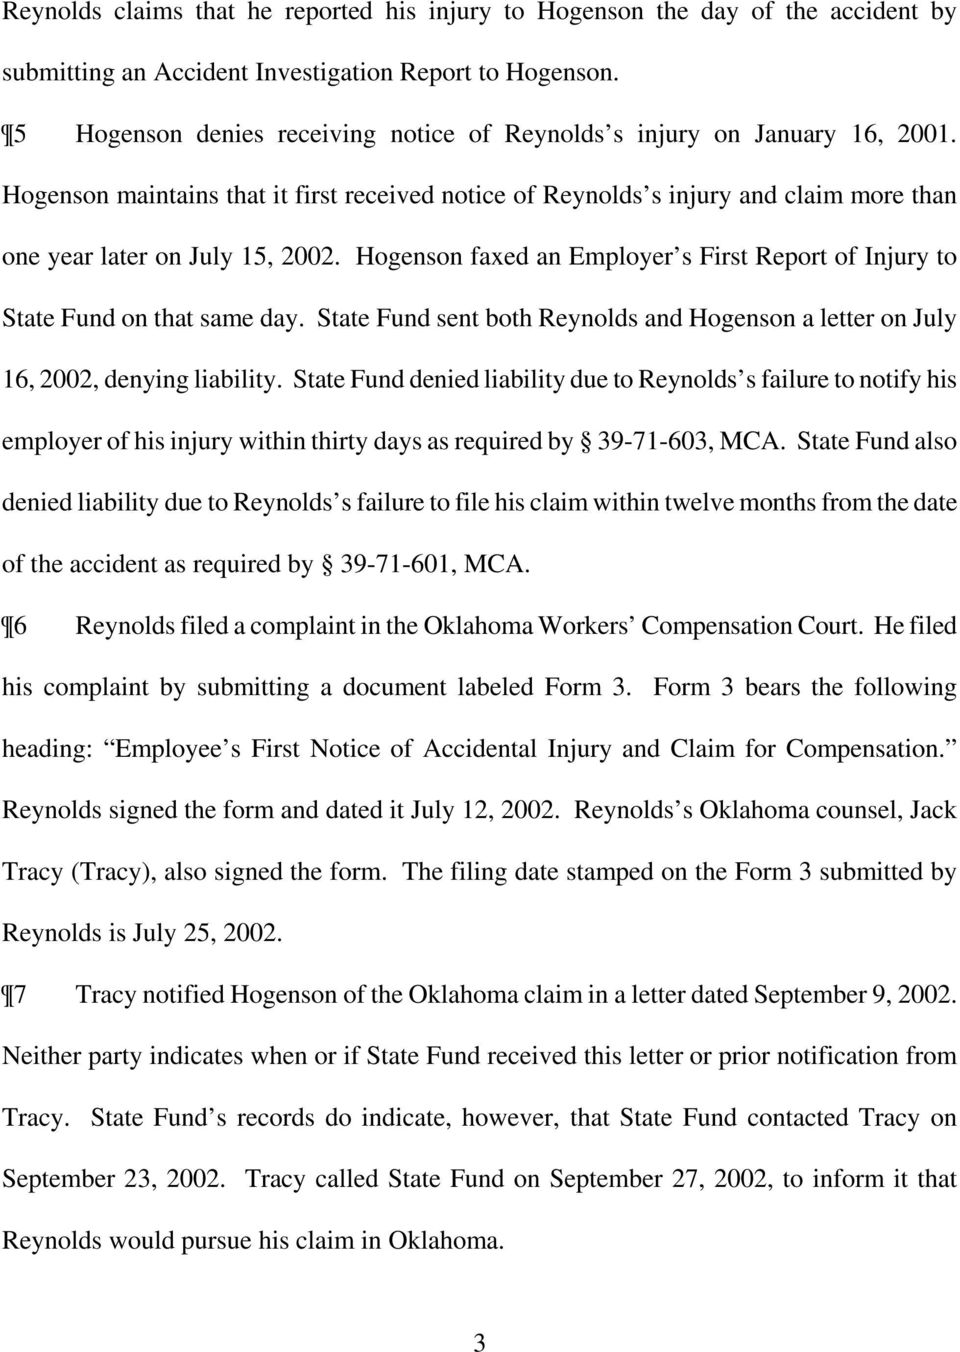 Hogenson faxed an Employer s First Report of Injury to State Fund on that same day. State Fund sent both Reynolds and Hogenson a letter on July 16, 2002, denying liability.